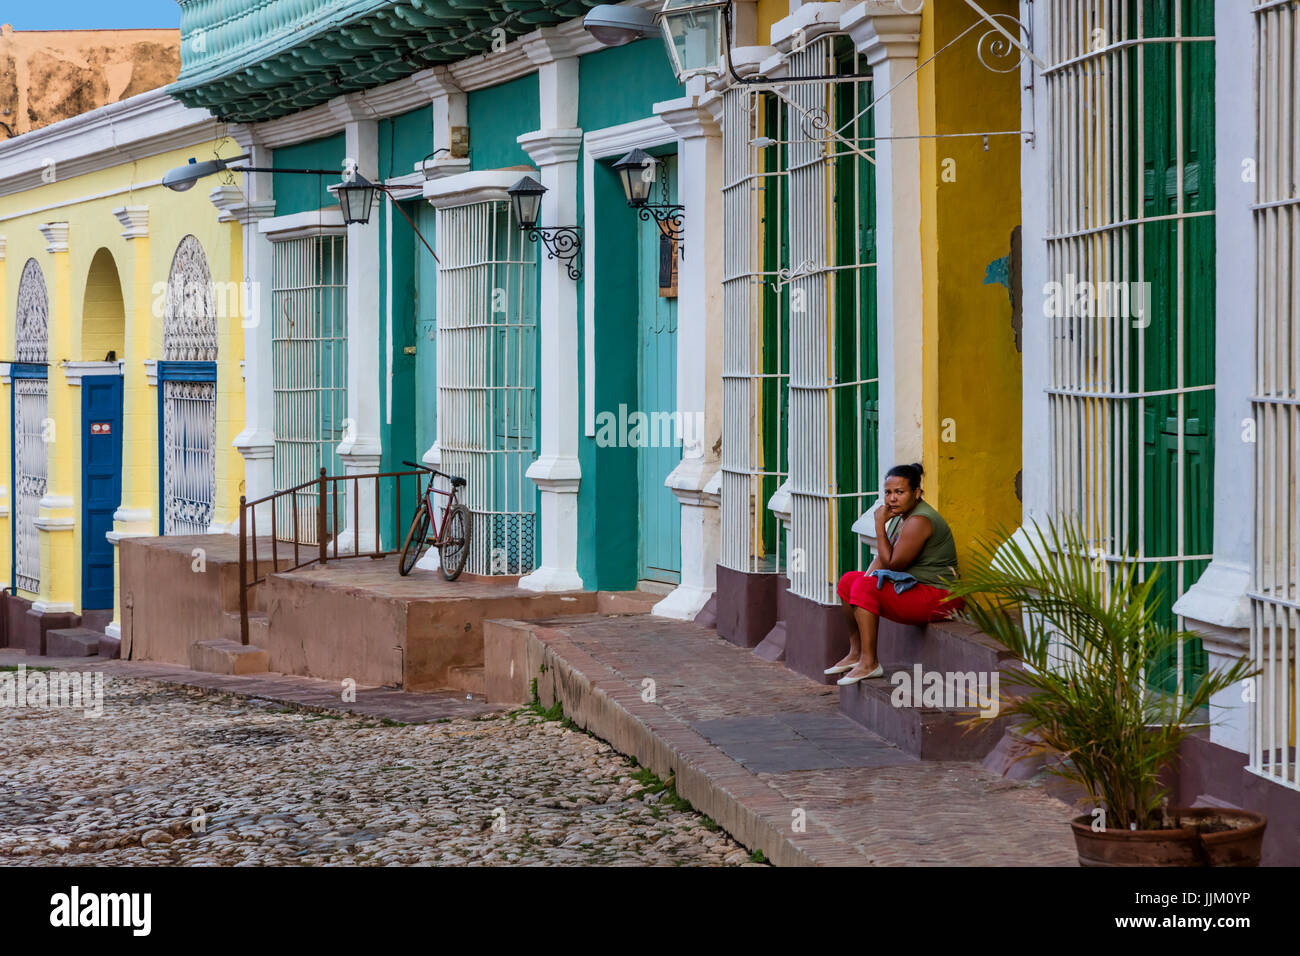 The cobble stone streets, wrought iron work and colorful houses of TRINIDAD, CUBA - Stock Image